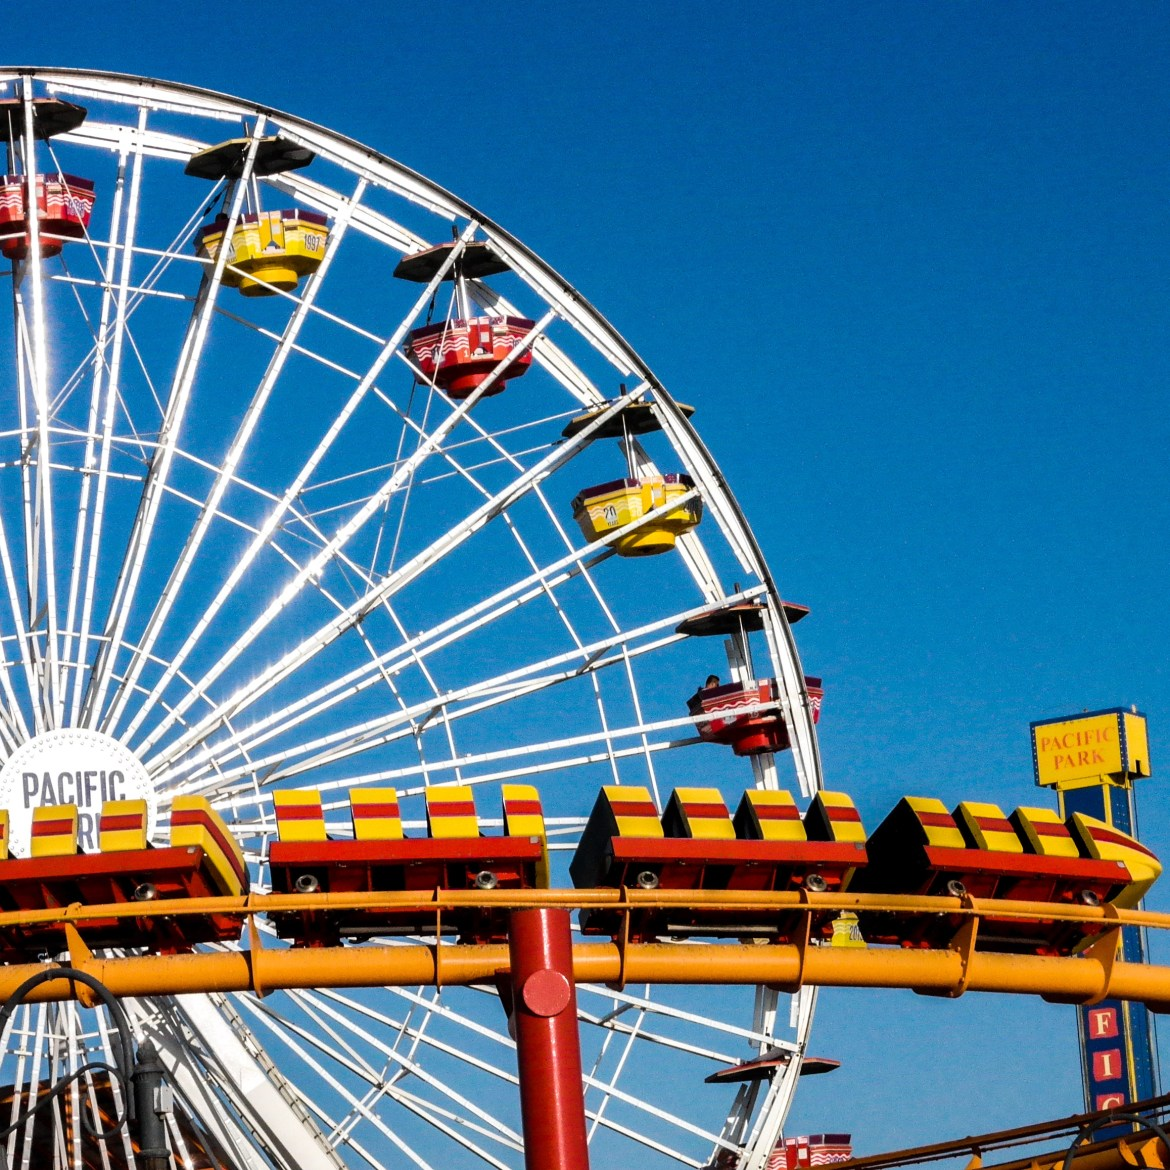 Things to do in Santa Monica California